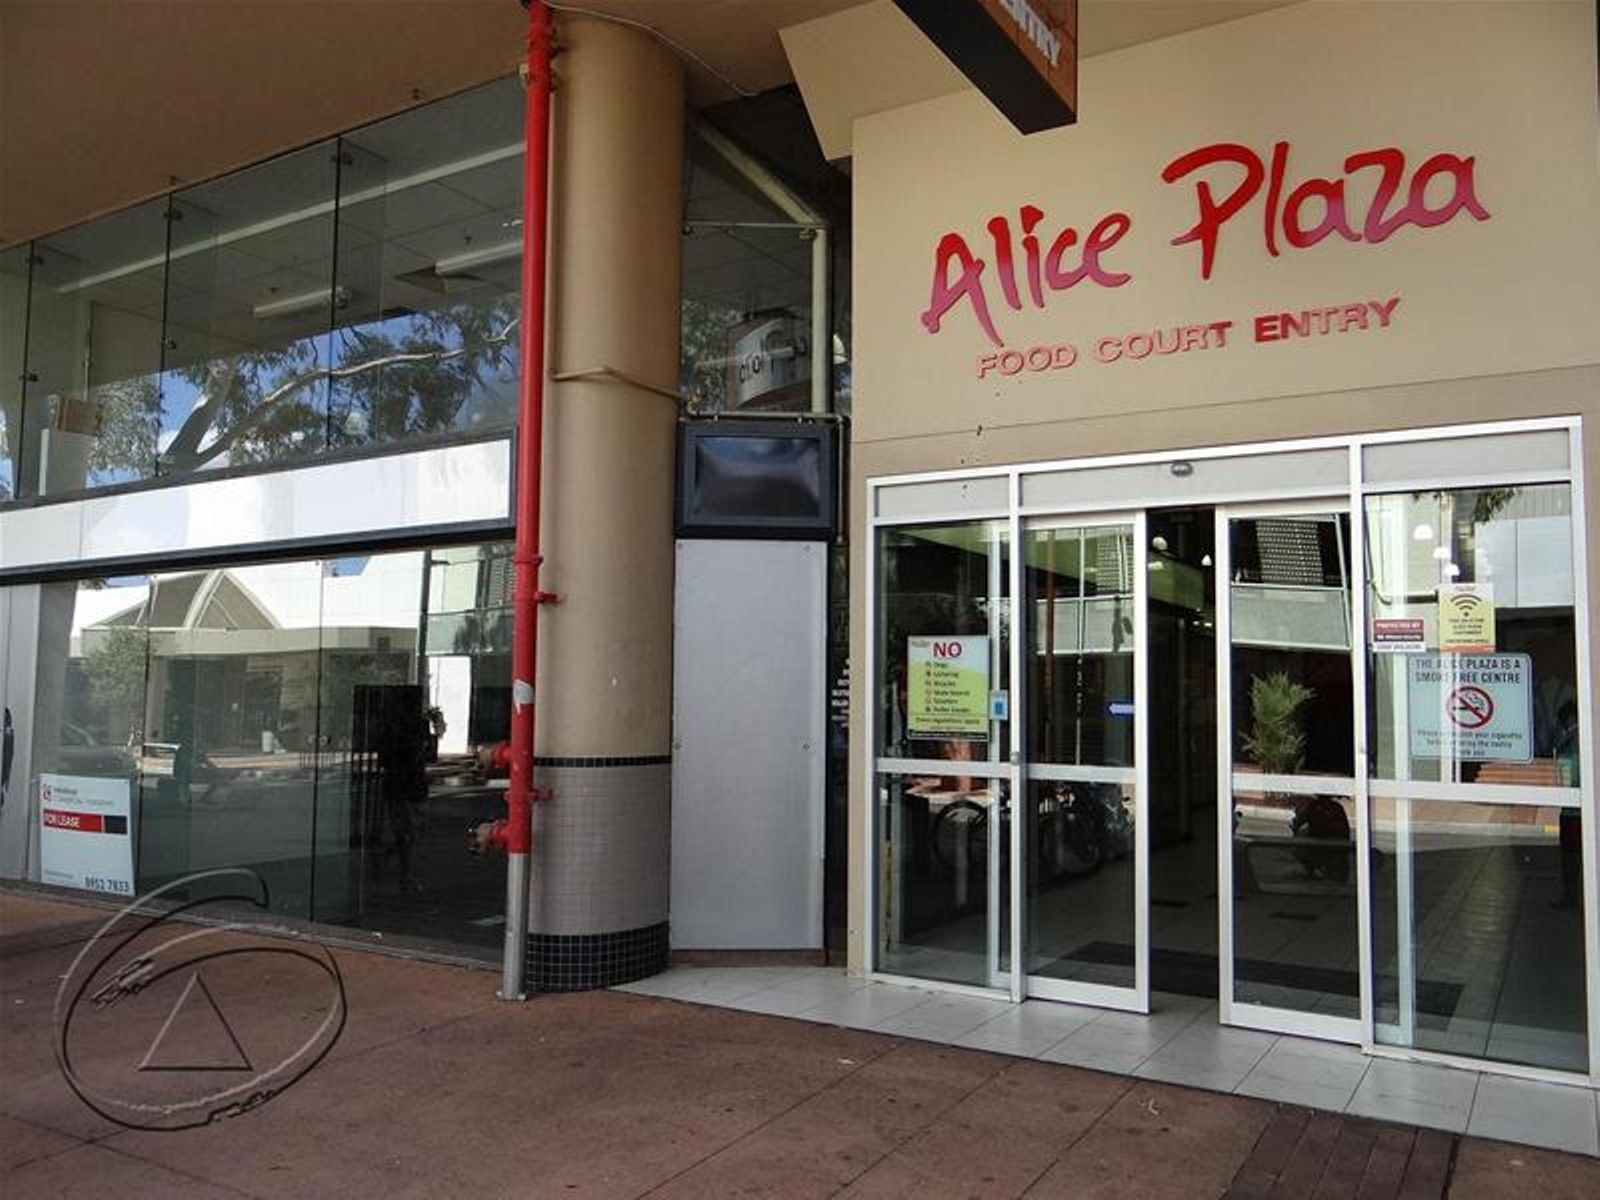 Shop 7/ Alice Plaza, Alice Springs, NT 0870